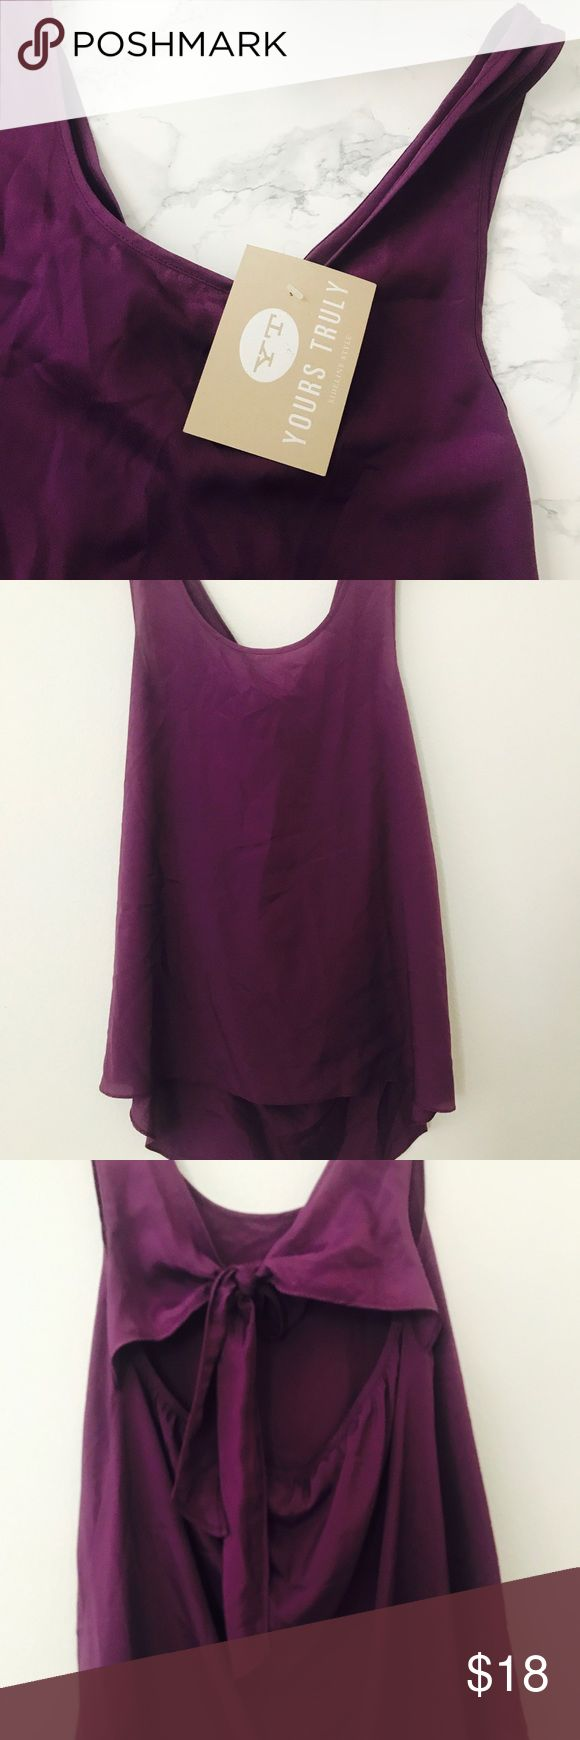 NWT Purple Bow Back Tank 🌻Comment For Exact Measurements 🌻Feel Free to Offer:) Negotiable Pricing  🌻Bundle for a Discounted Price! 🌻Clean & Smoke Free 🌻Packaged With Love and Care  🌻Fast Response Time Boutique Tops Tank Tops